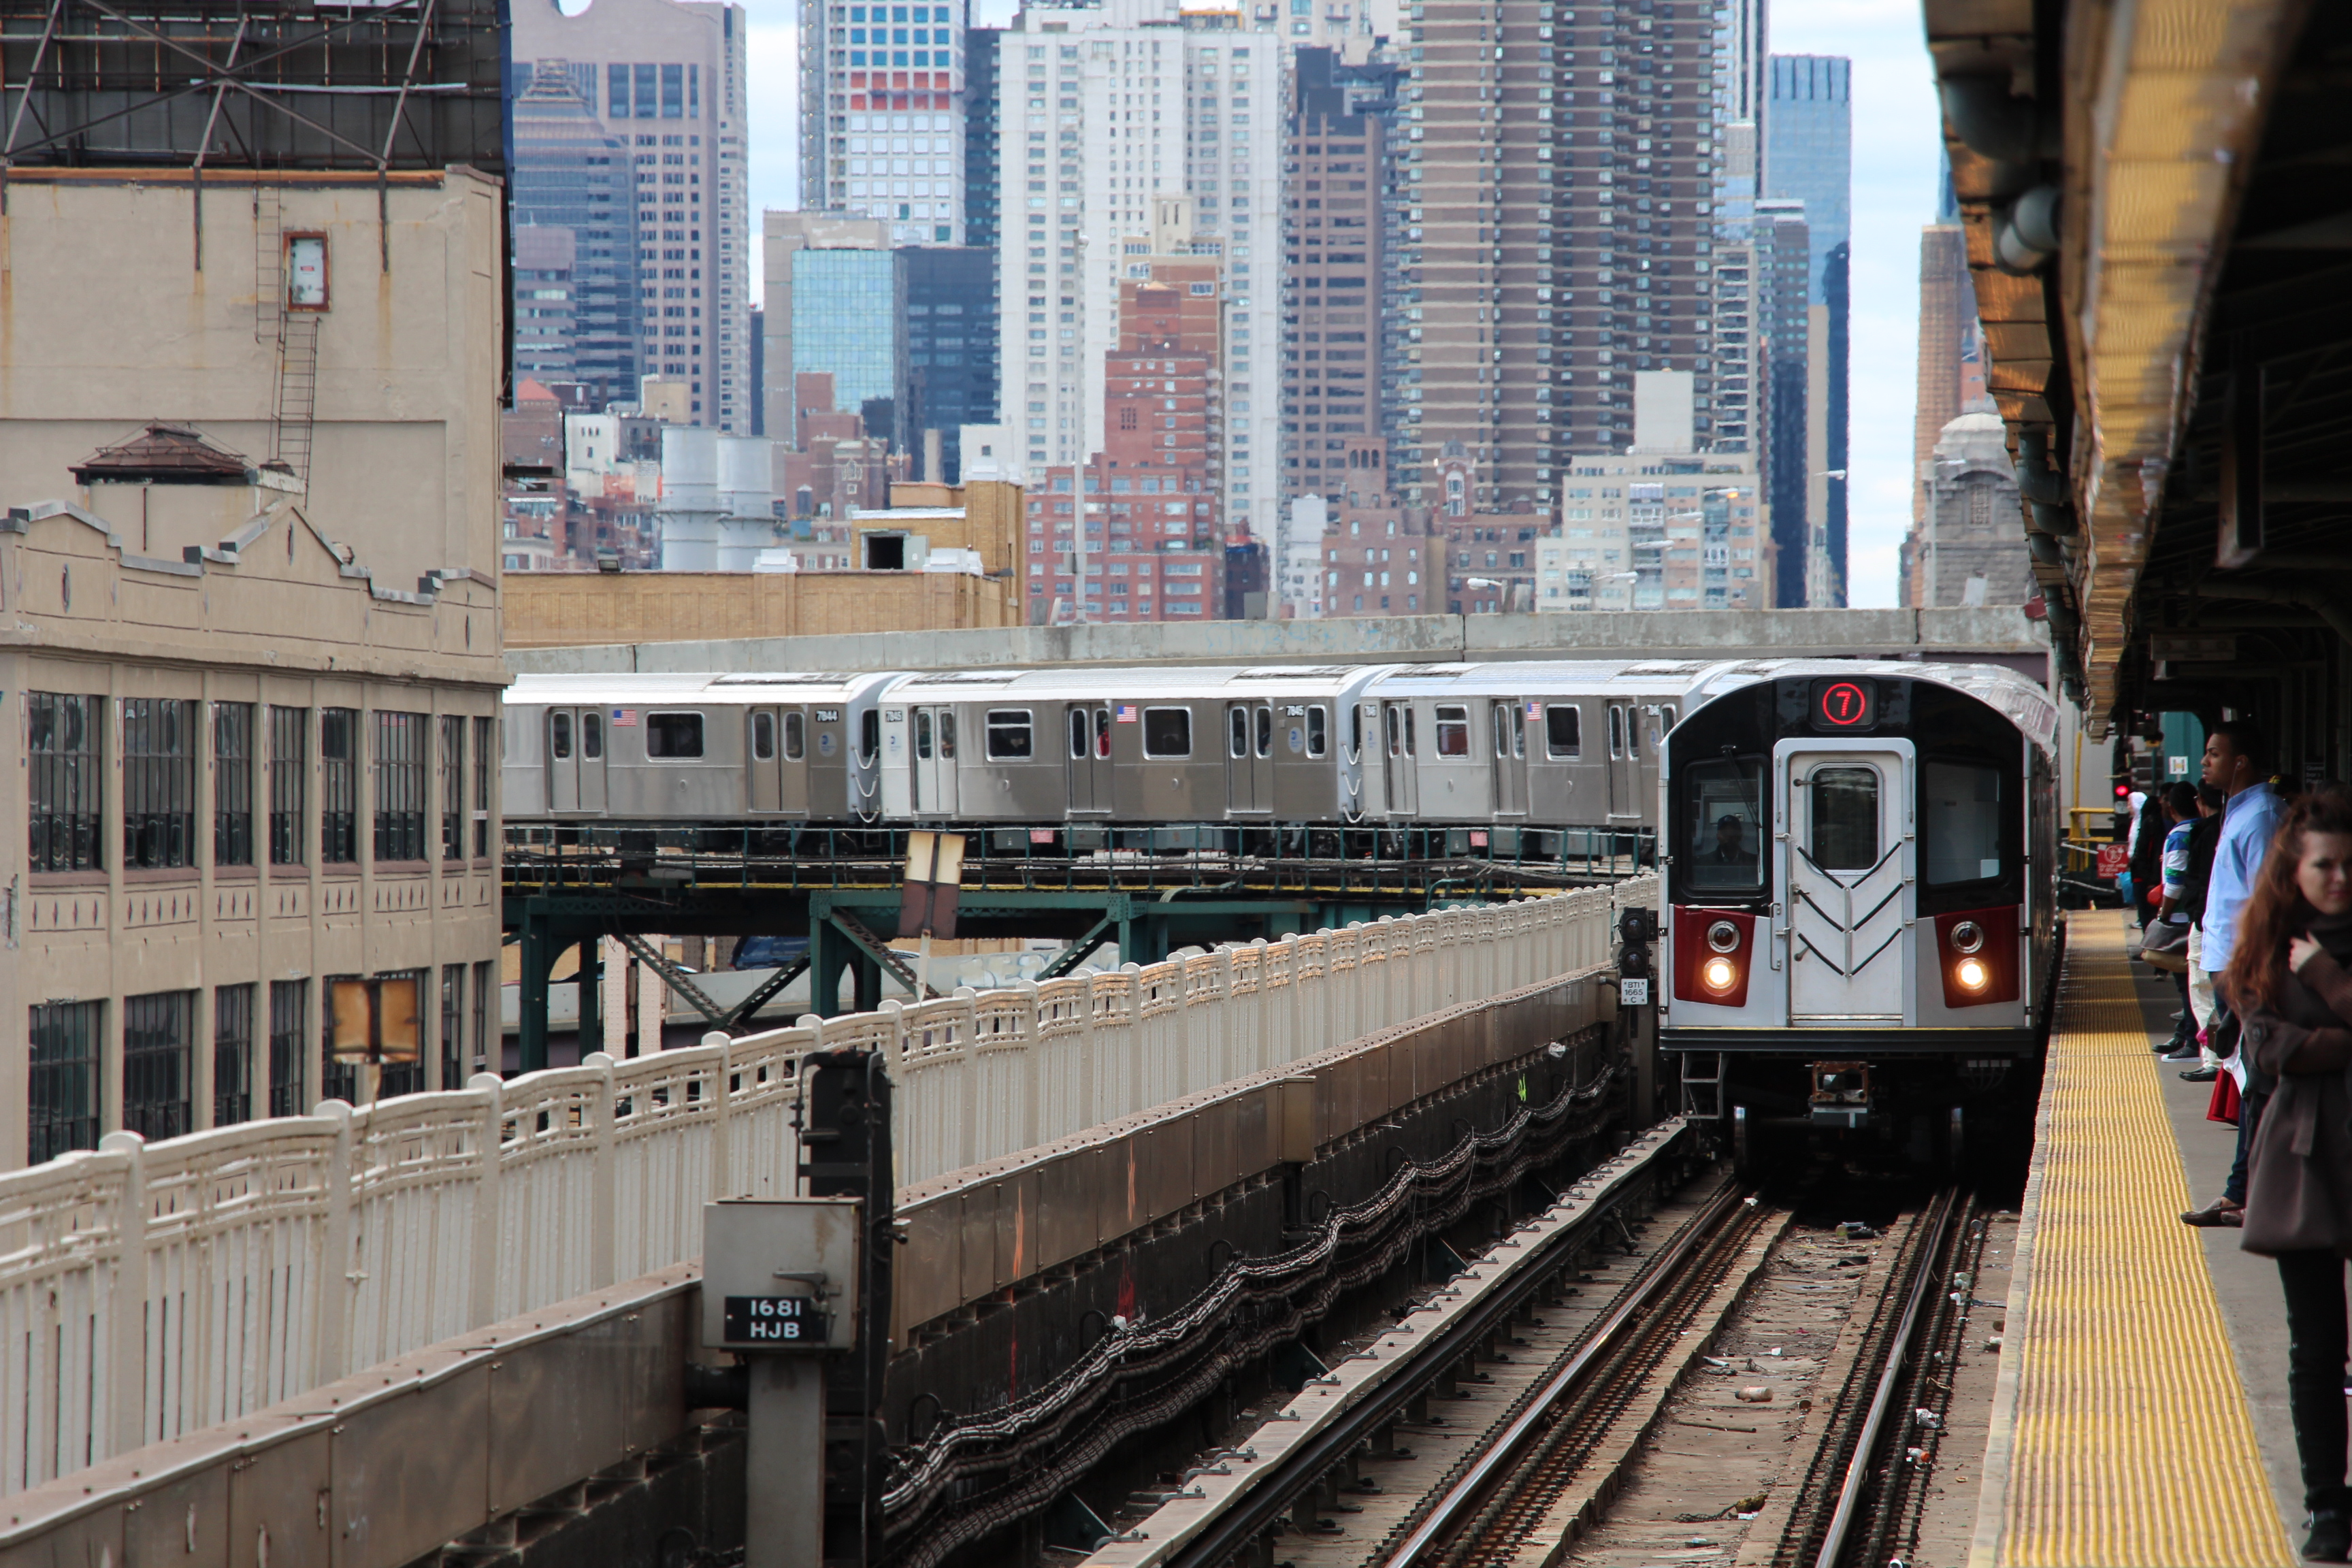 7 Train running on elevated tracks in Long Island City